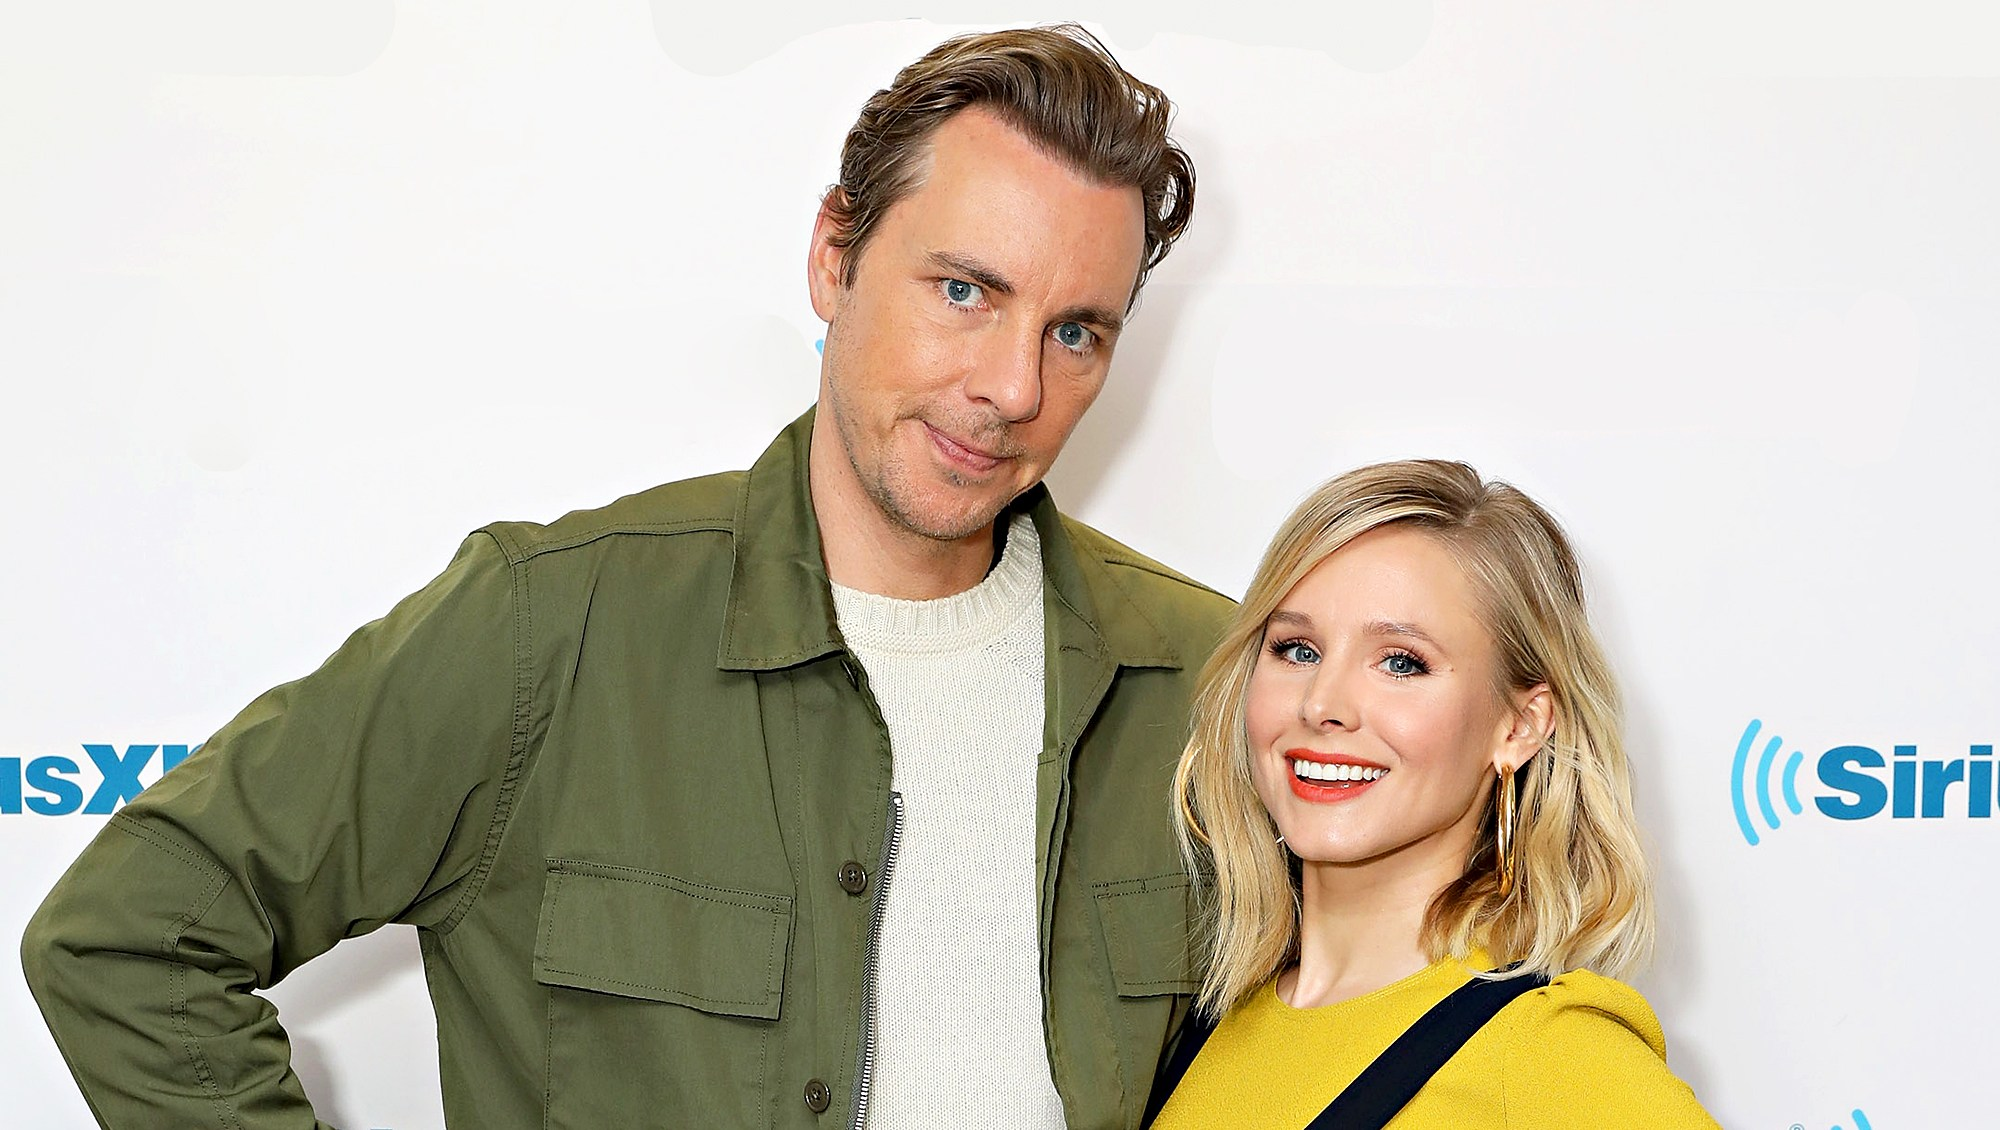 Dax Shepard and Kristen Bell visit the SiriusXM Studios on March 22, 2017 in New York City.